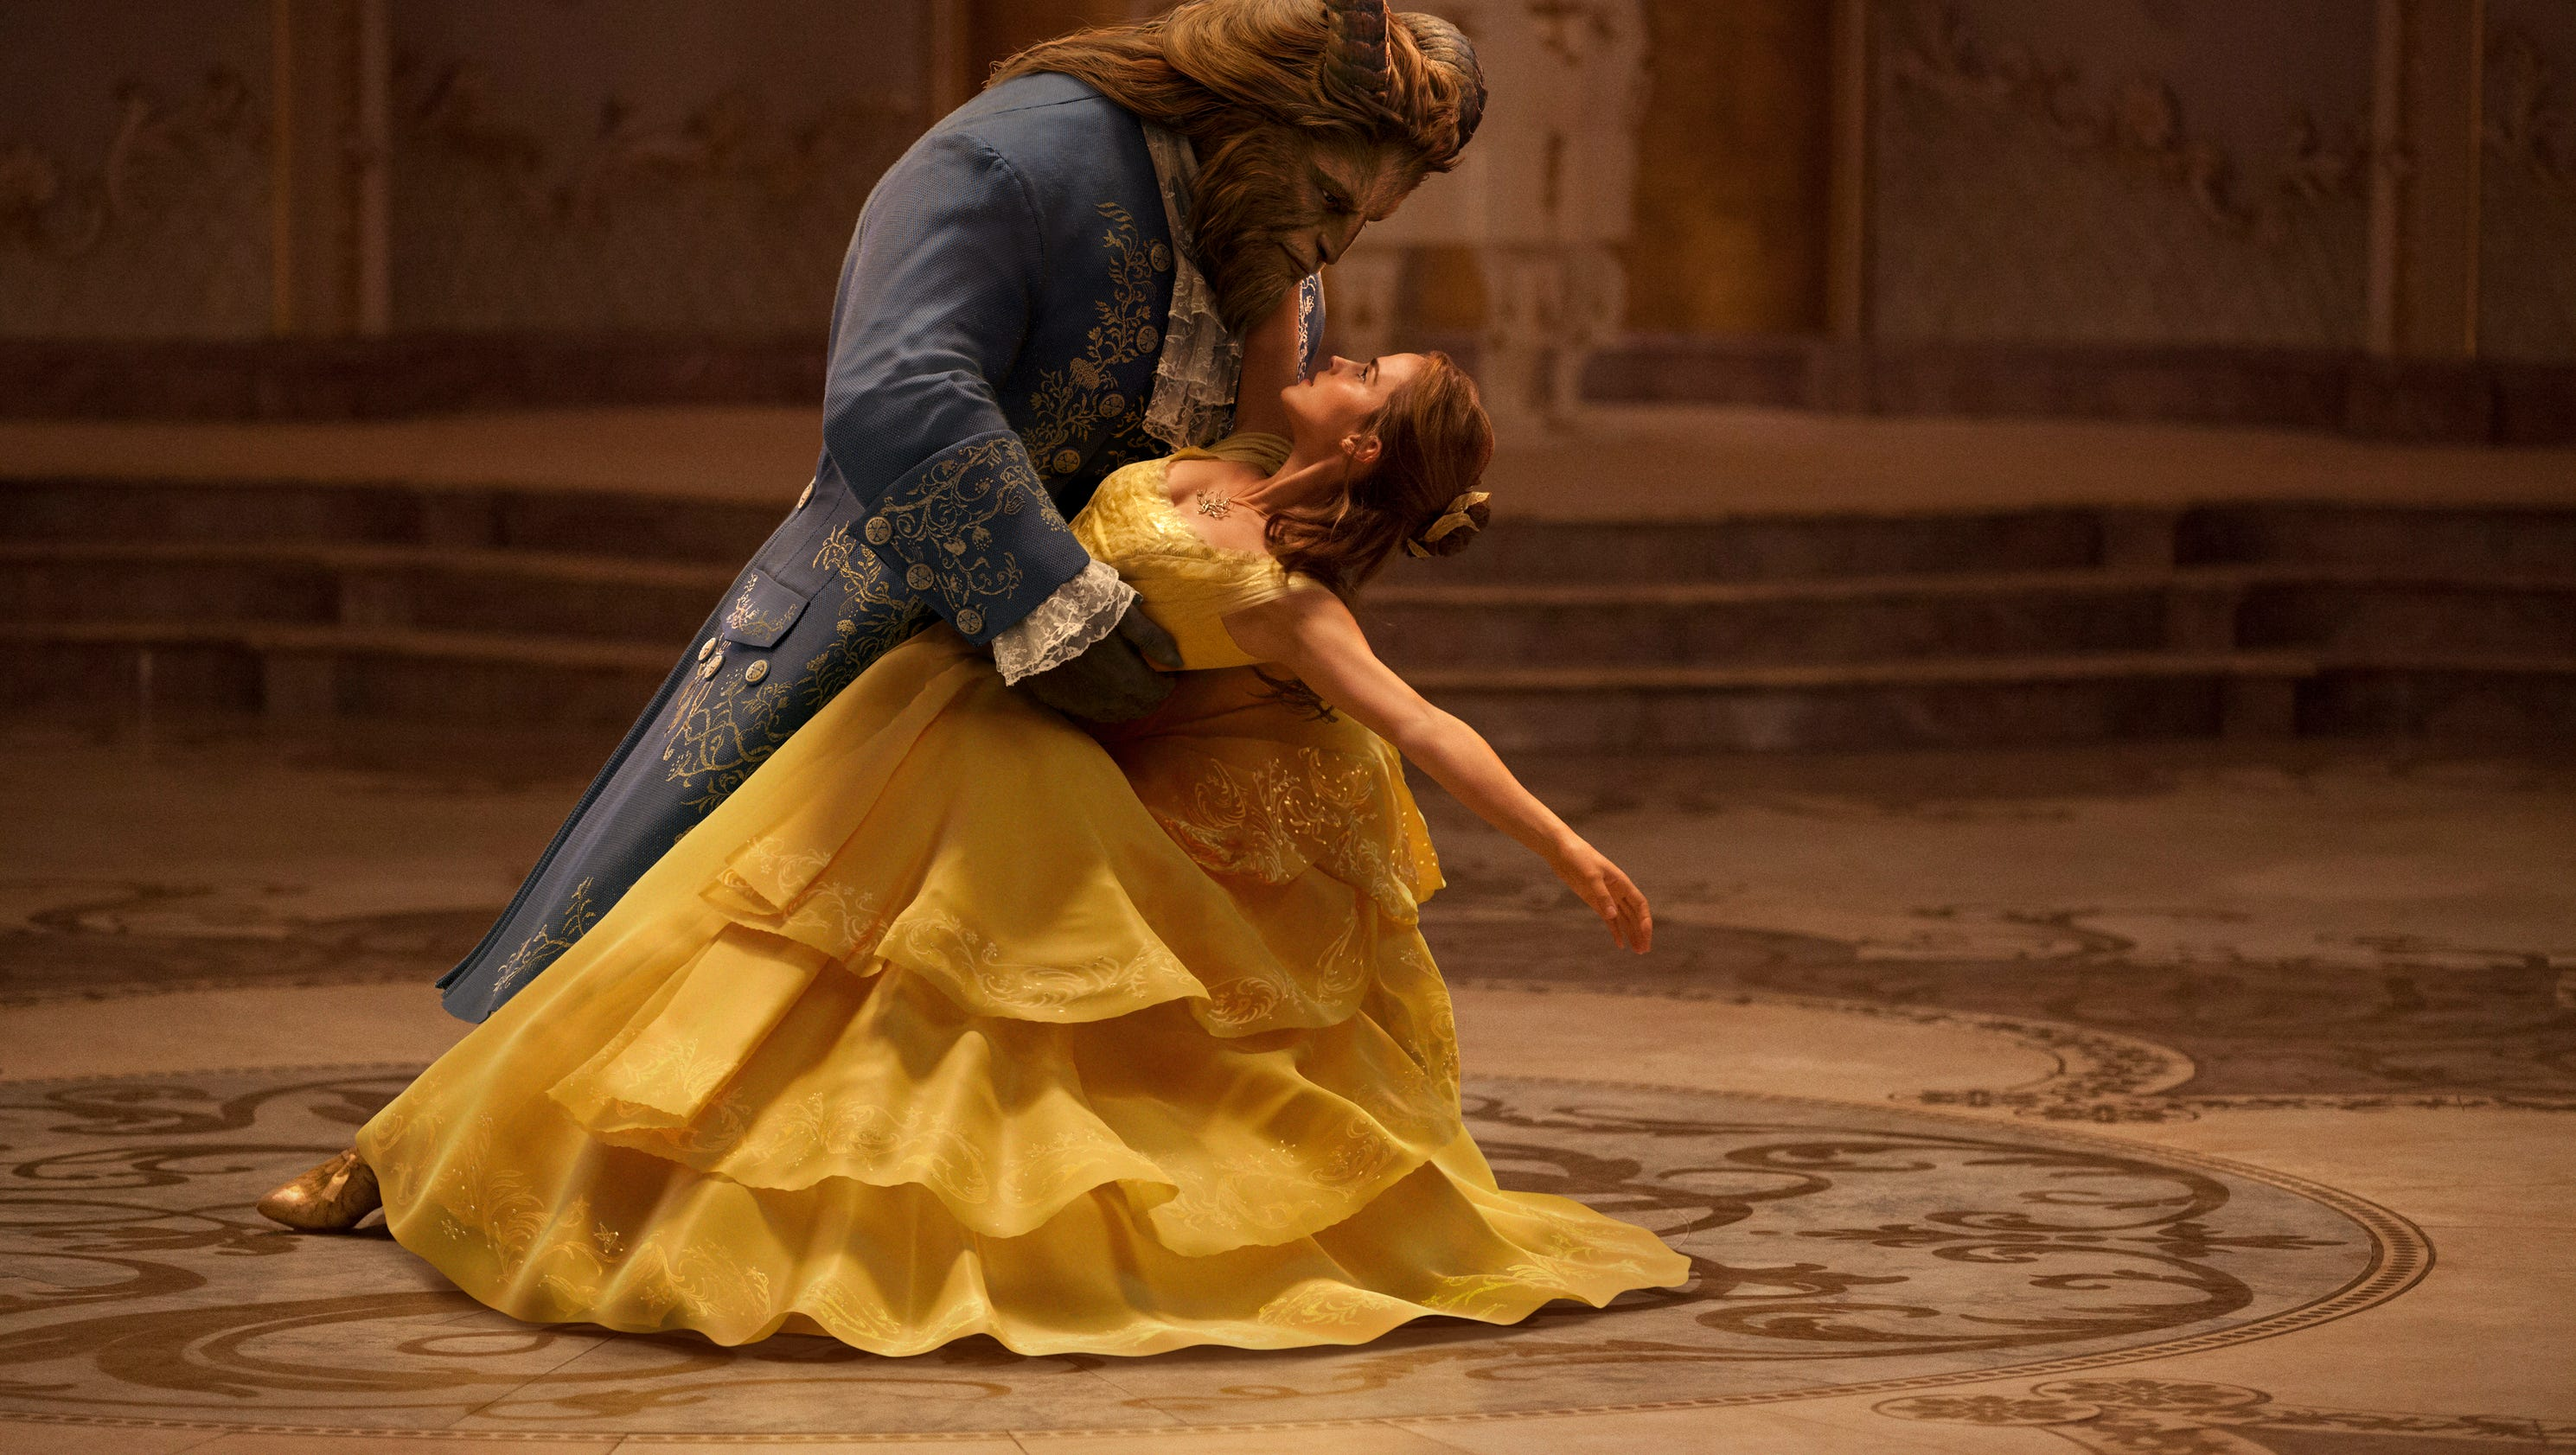 U0026 39 Beauty And The Beast U0026 39  Musical To Debut On Disney Ship